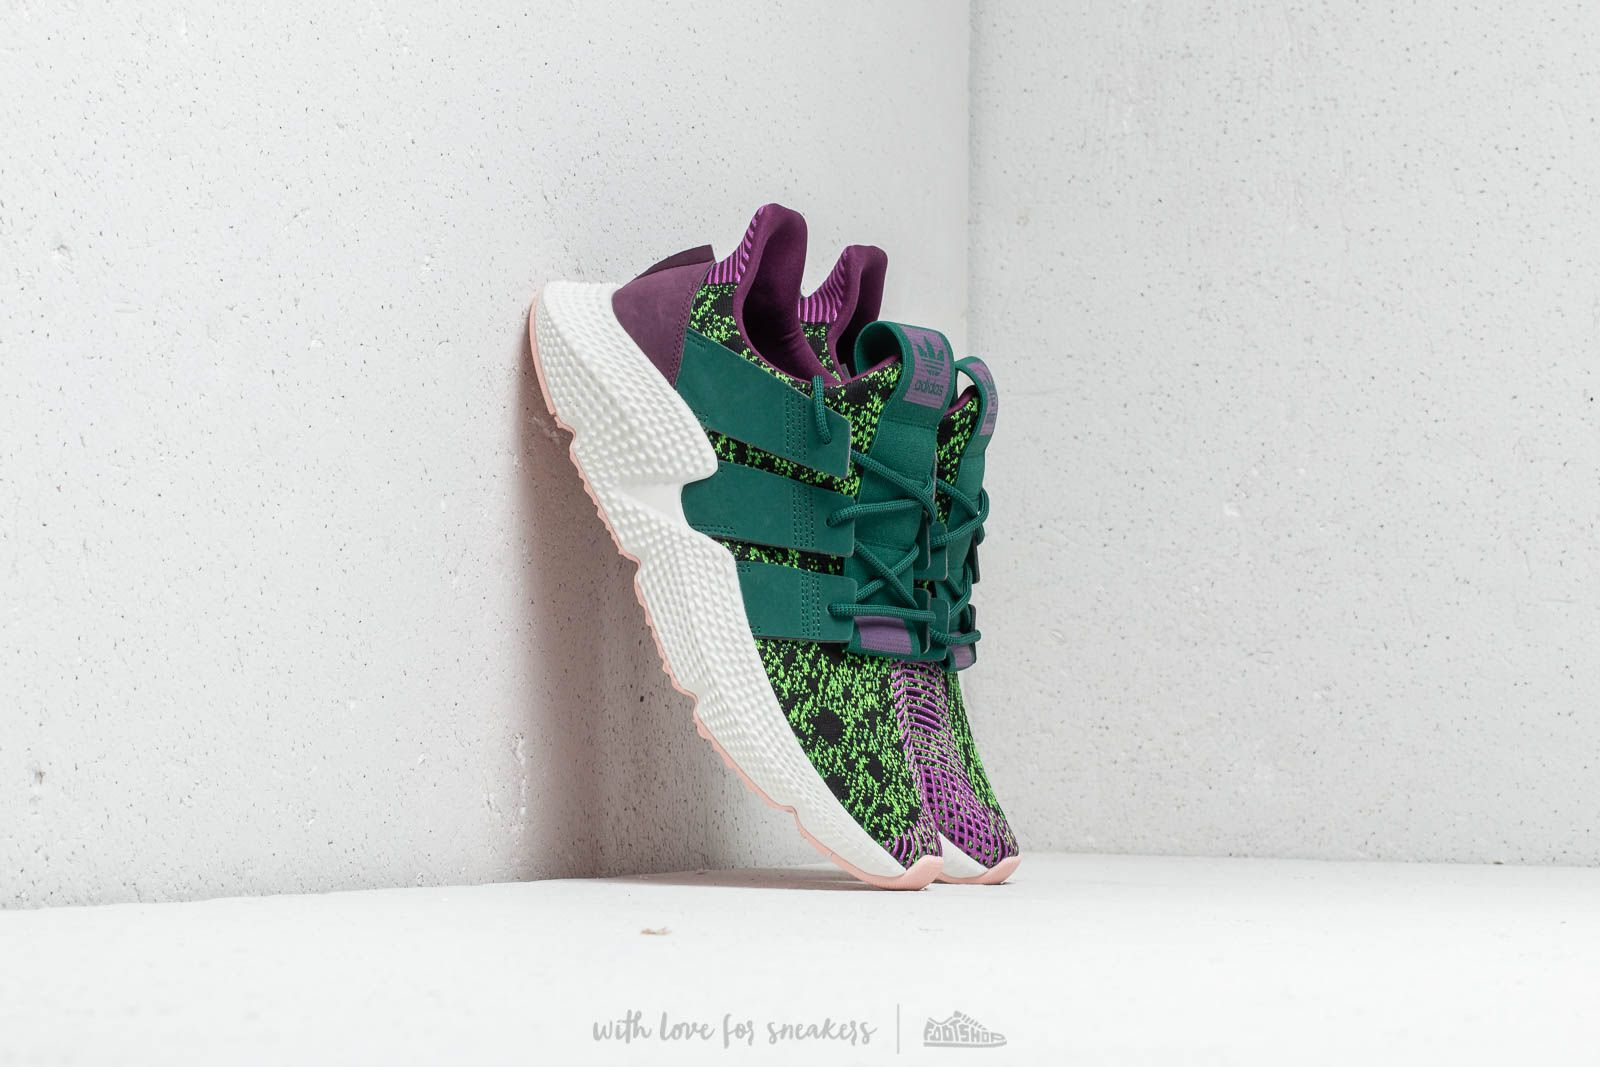 Mount Bank Apellido velocidad  Men's shoes adidas x Dragon Ball Z Prophere Base Green/ Shock Purple/  Supplier Colour